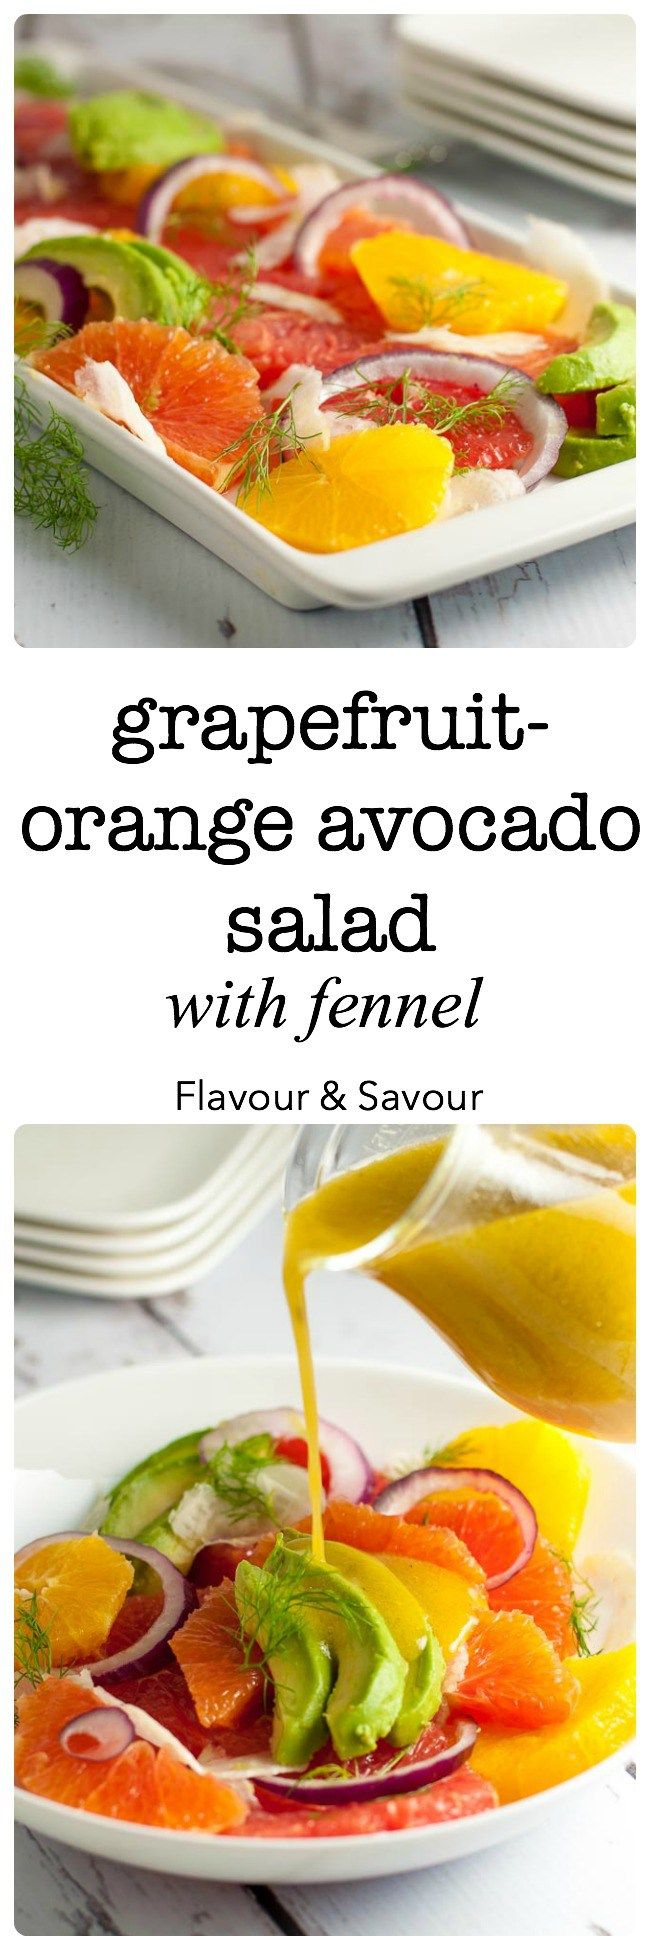 Grapefruit-Orange Avocado Salad with Fennel. Banish the winter blues ...